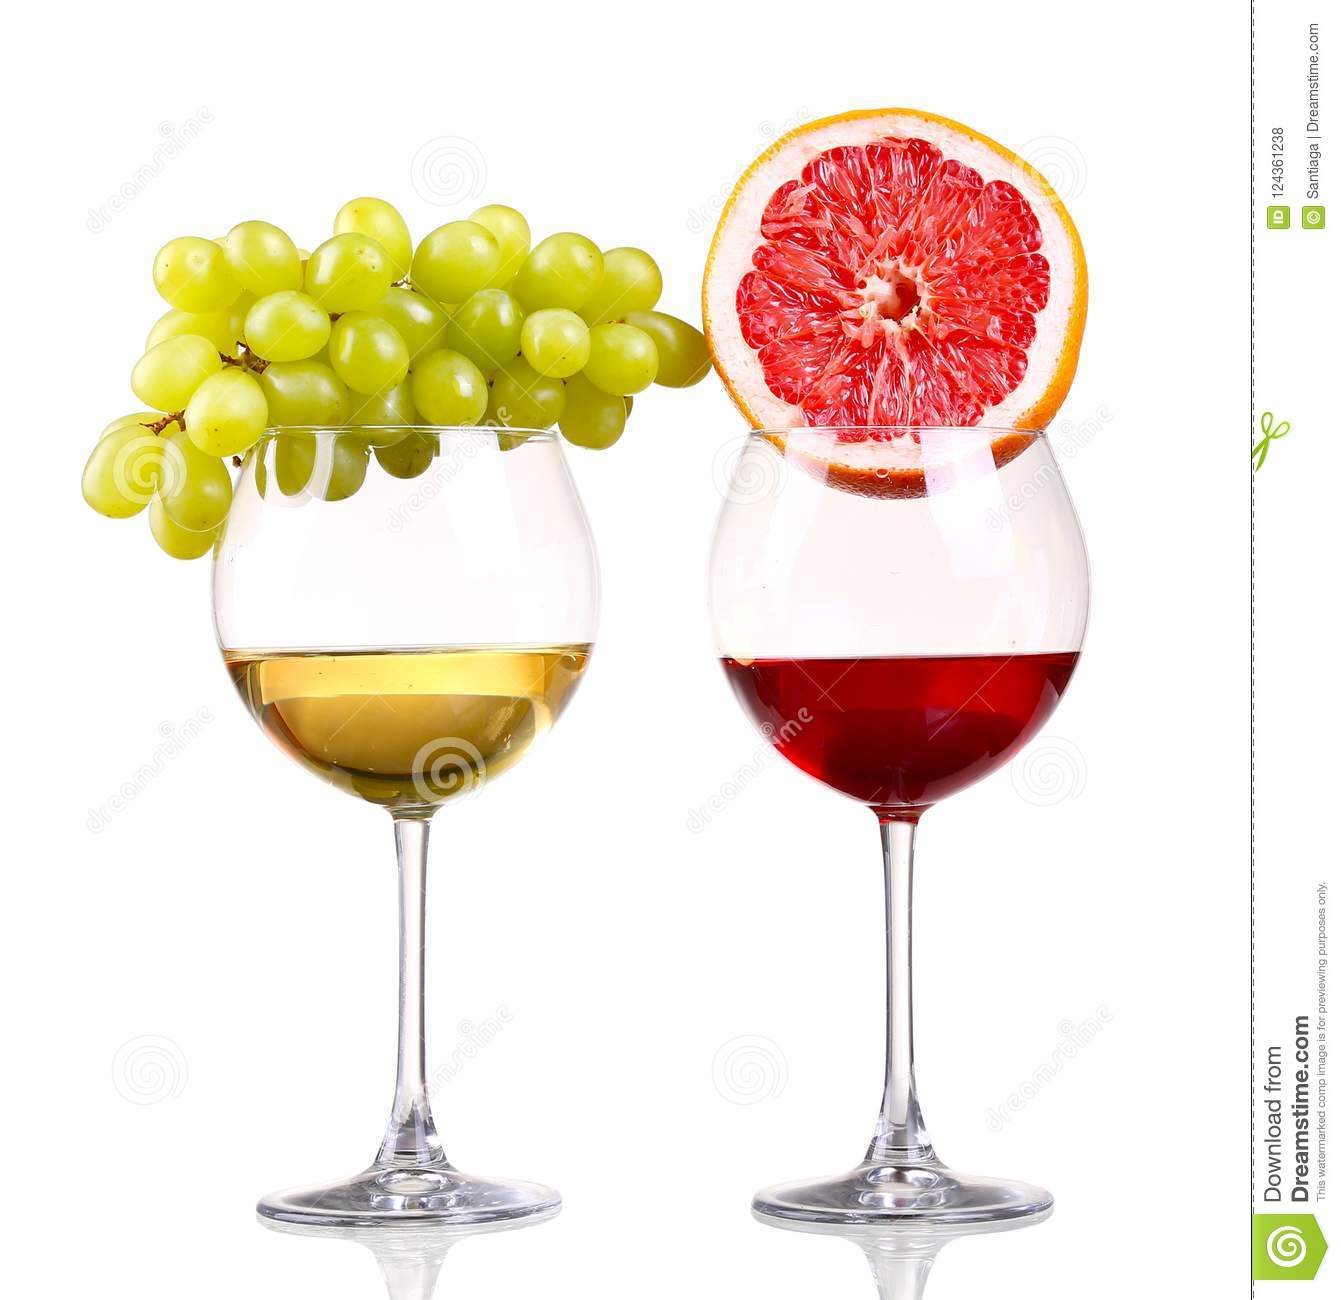 Glass of red and white wine, grape and grapefruit